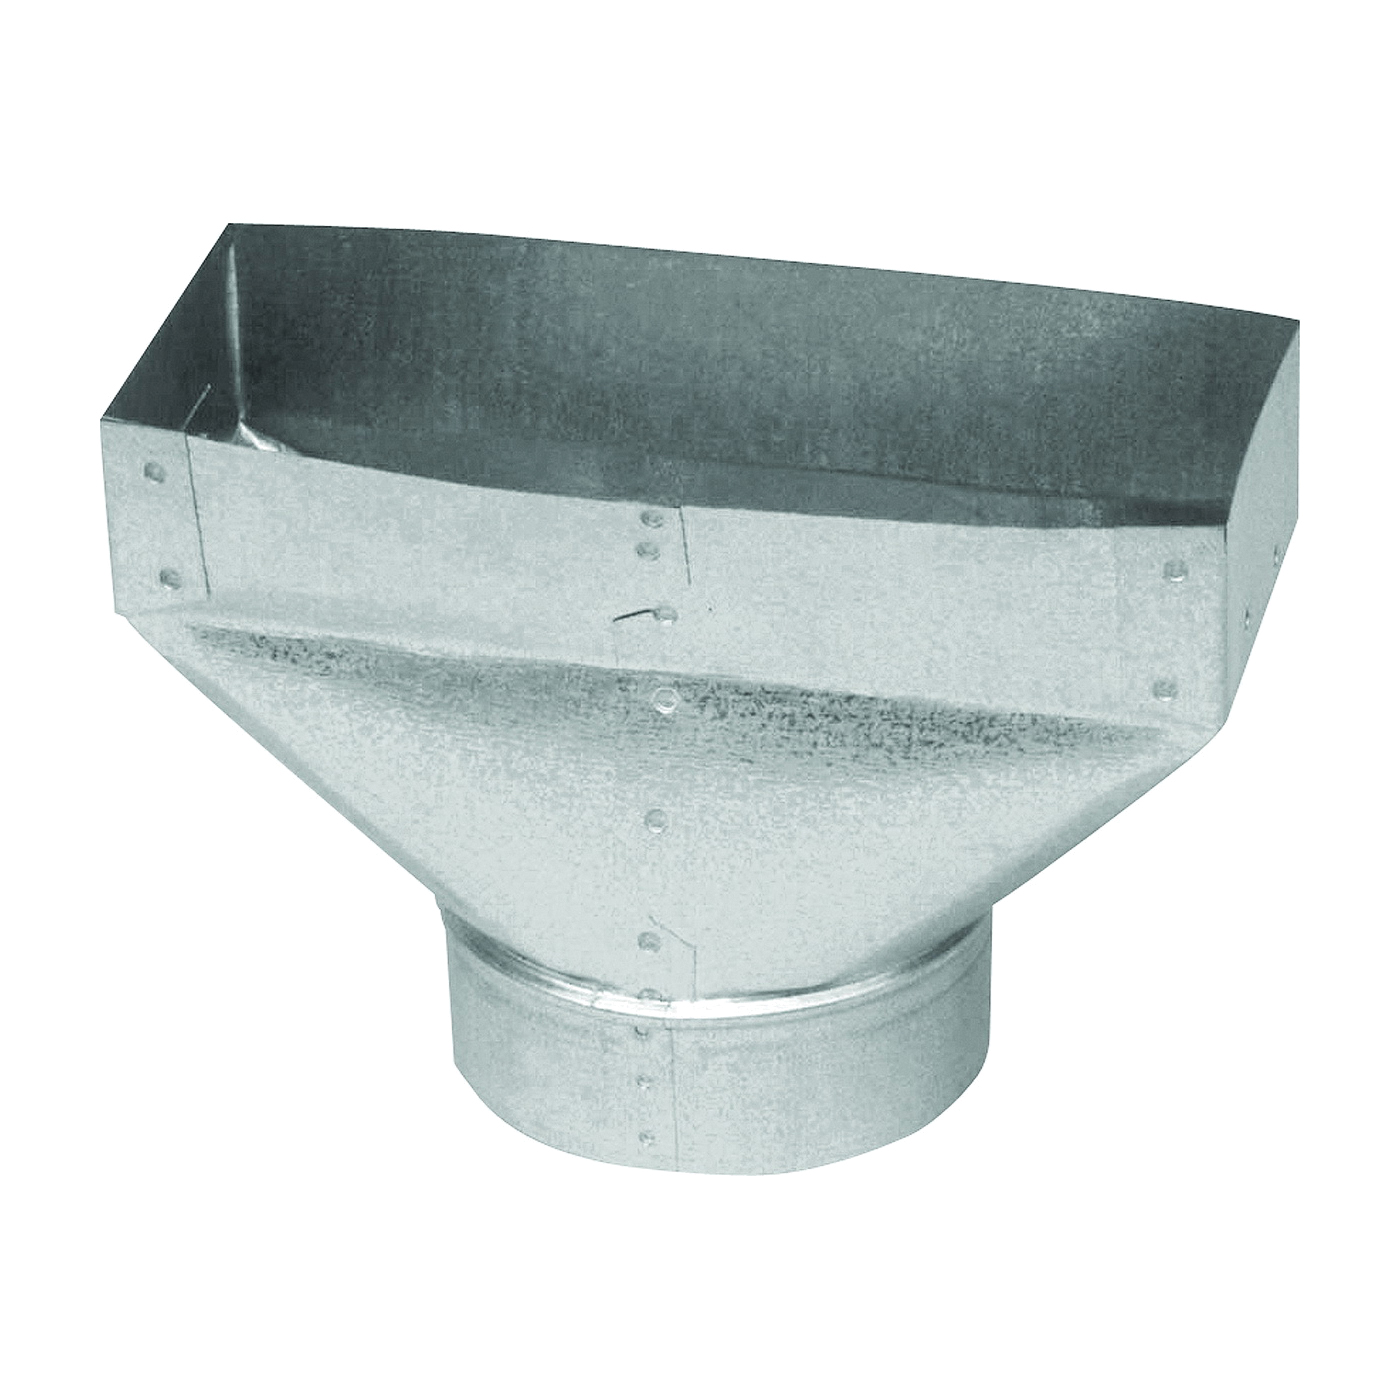 Picture of Imperial GV0692-A Universal Boot, 3-1/4 in L, 10 in W, 5 in H, Steel, Galvanized